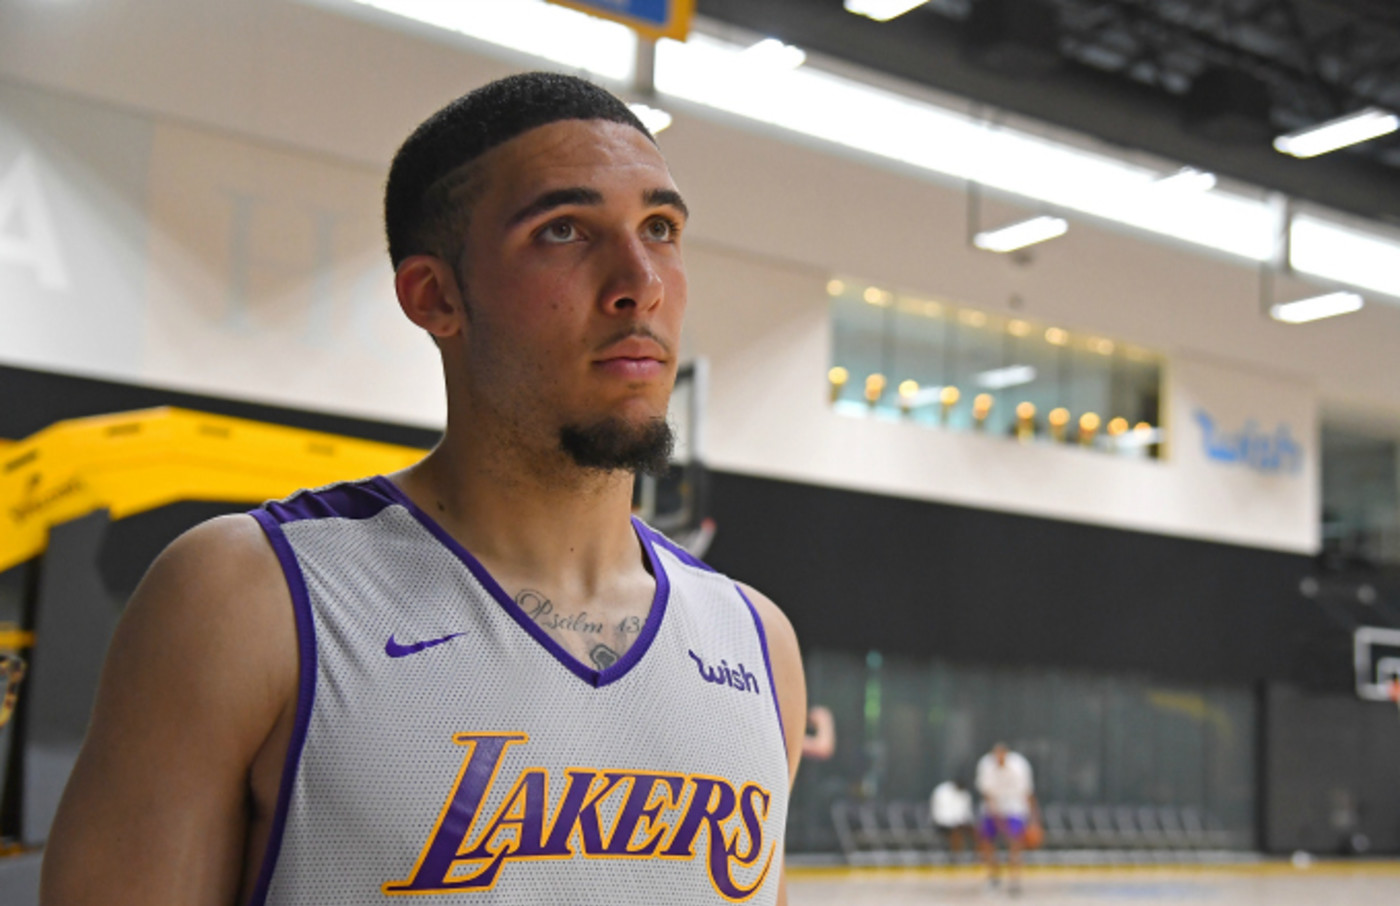 LiAngelo Ball walks on the court during the Los Angeles Lakers 2018 NBA Pre-Draft Workout